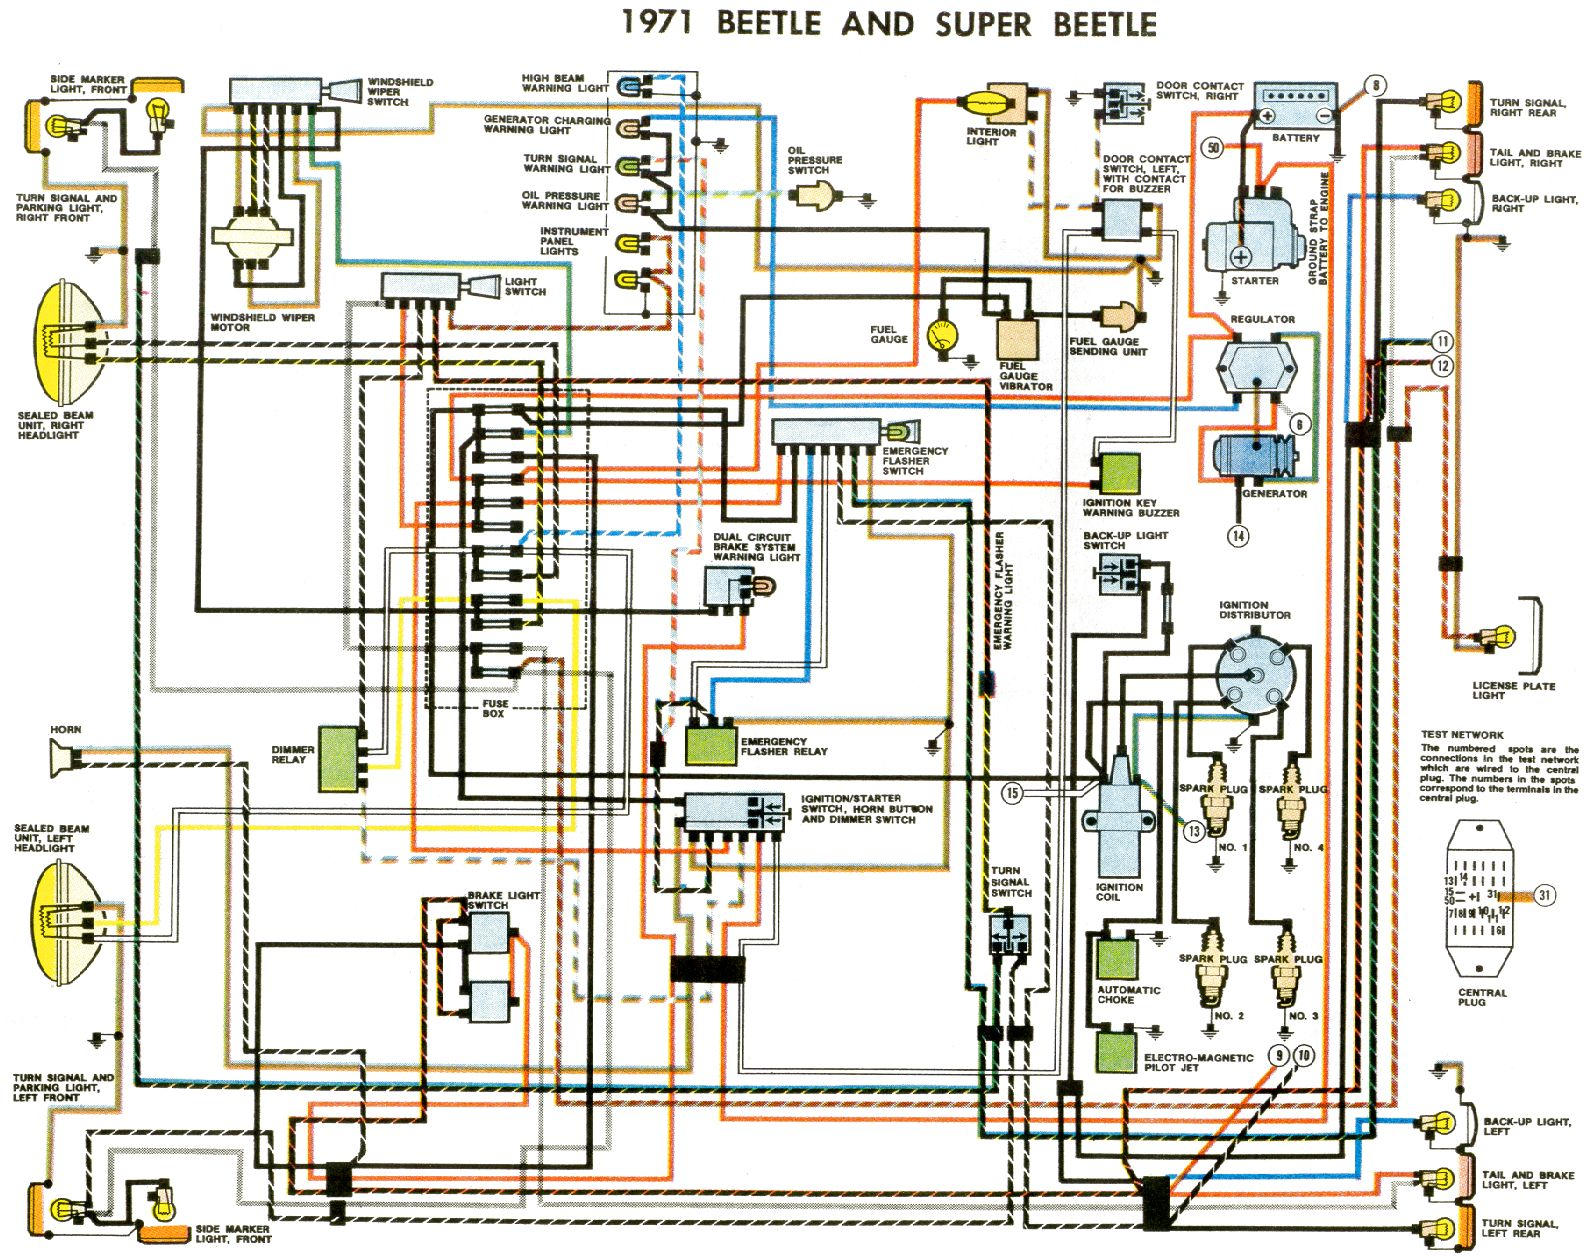 wiring diagrams information electrical sbo community